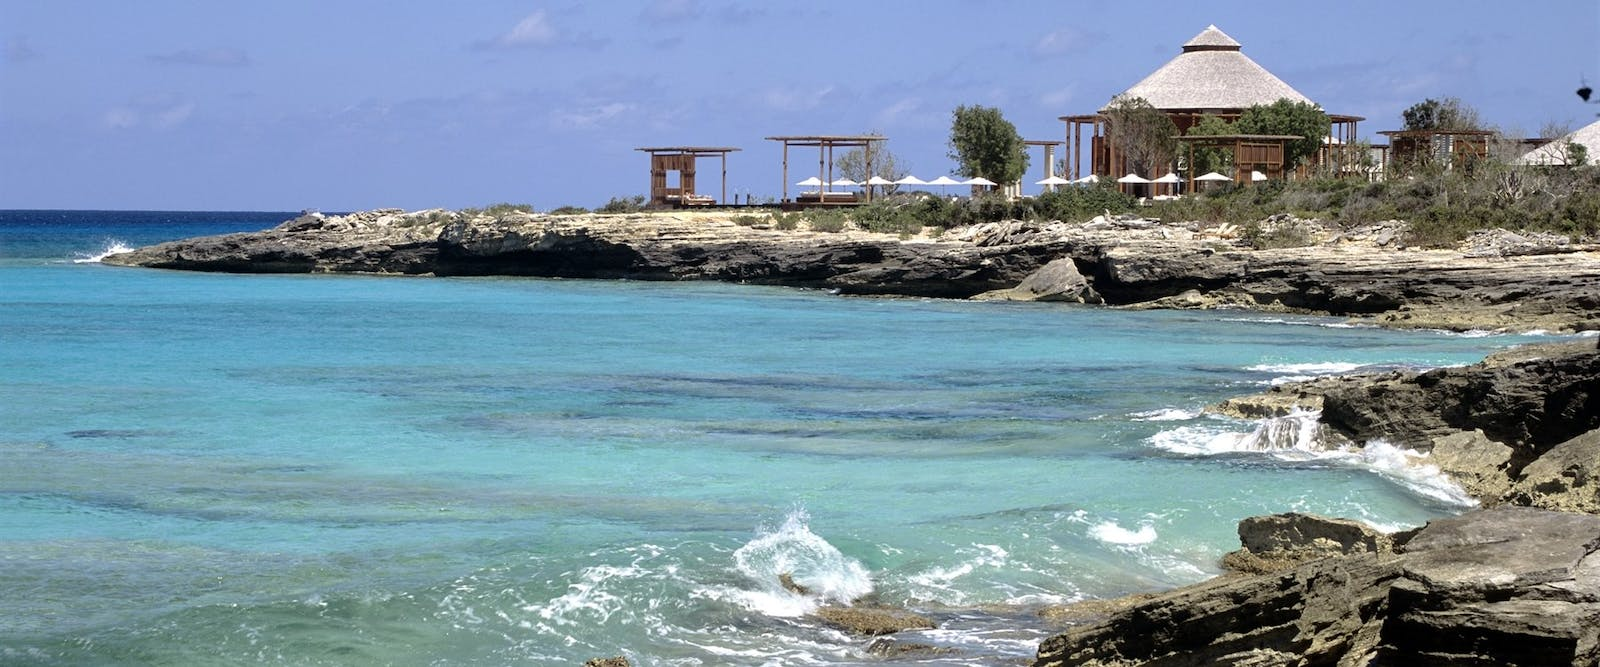 View from Rocky Headlands at Amanyara, Turks and Caicos